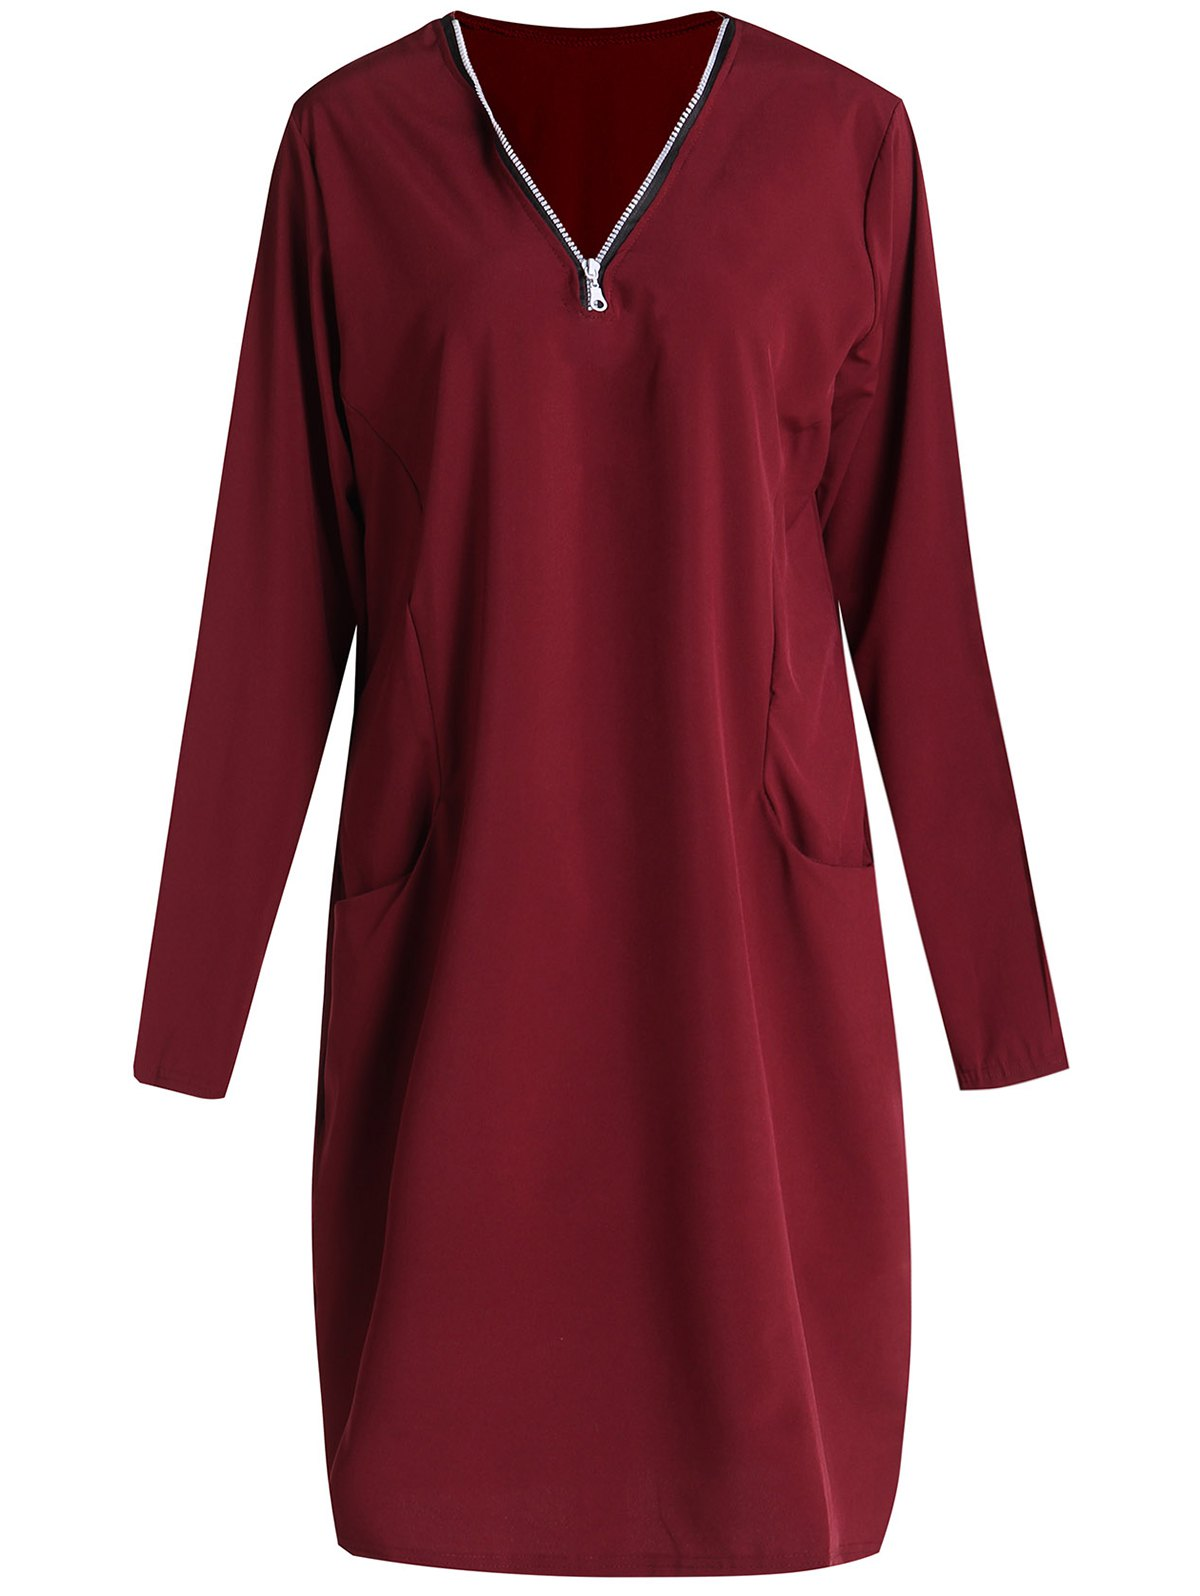 Stylish V-Neck Long Sleeve Plus Size Solid Color Women's Dress - 4XL WINE RED